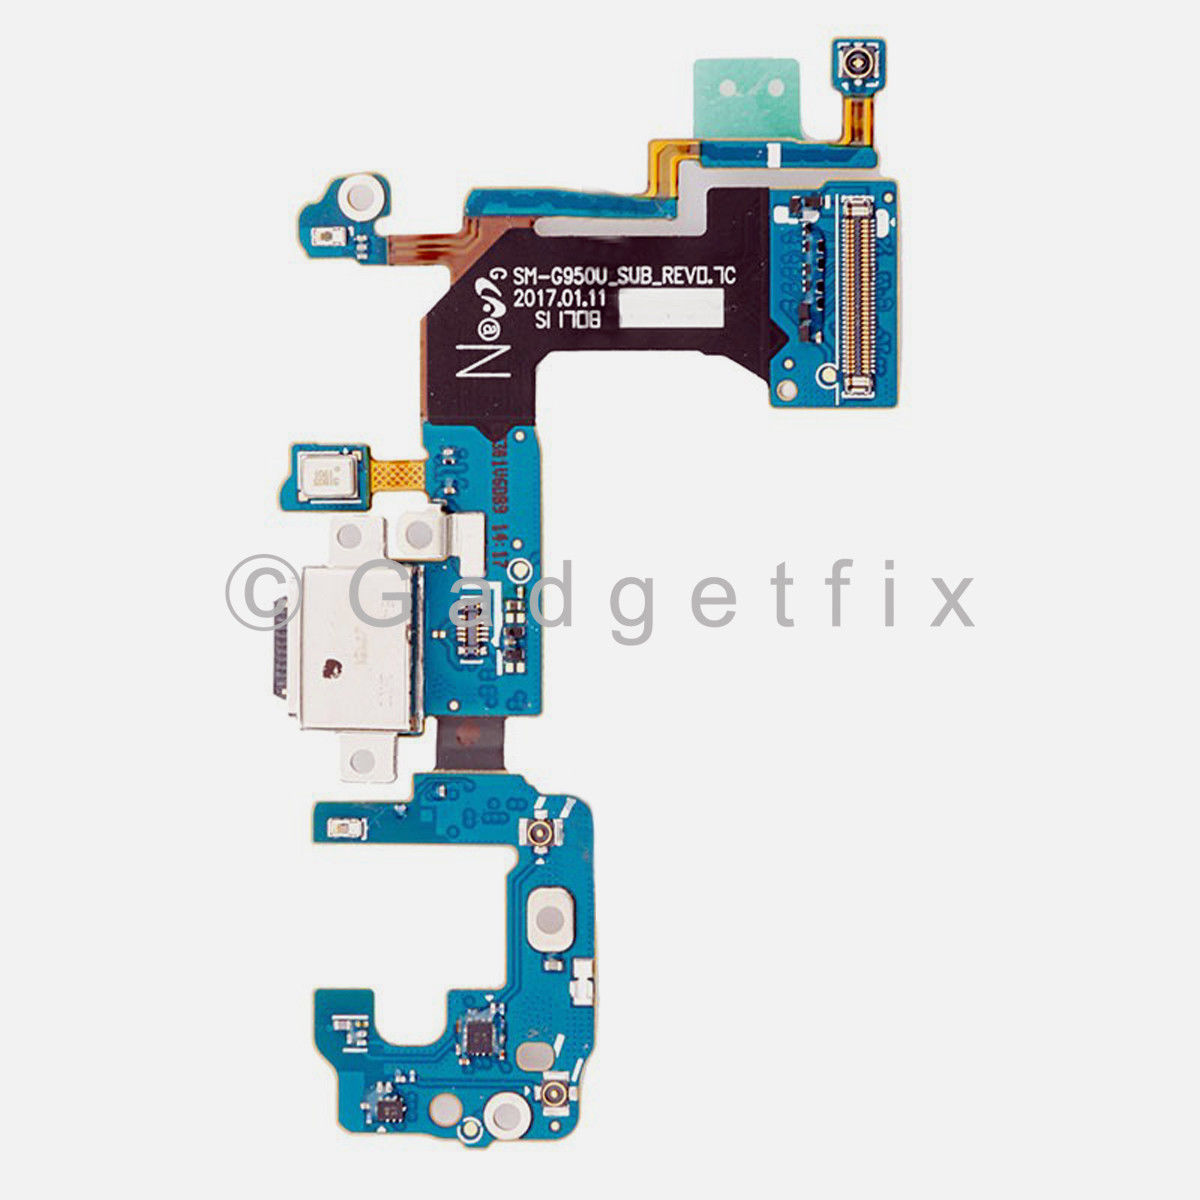 Samsung Galaxy S8 G950U G950A G950T Charger Charging Port Dock Mic Flex Cable